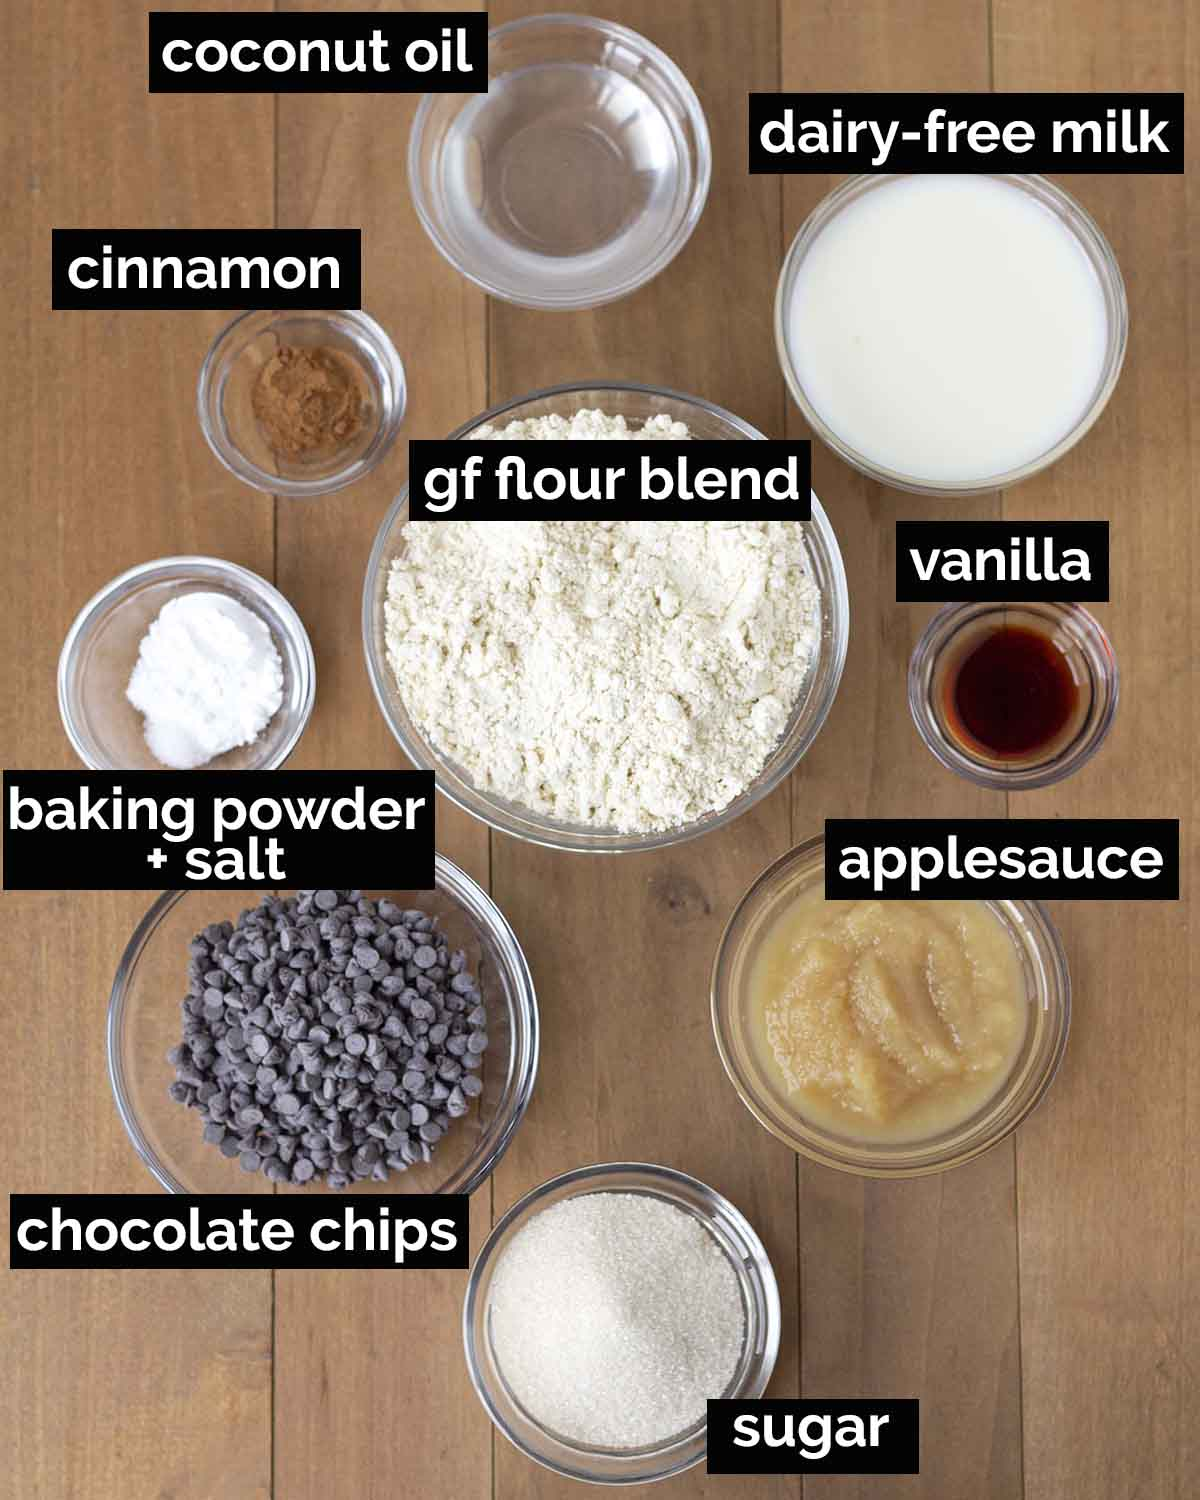 Overhead shot showing all the ingredients needed to make mini chocolate chip muffins.